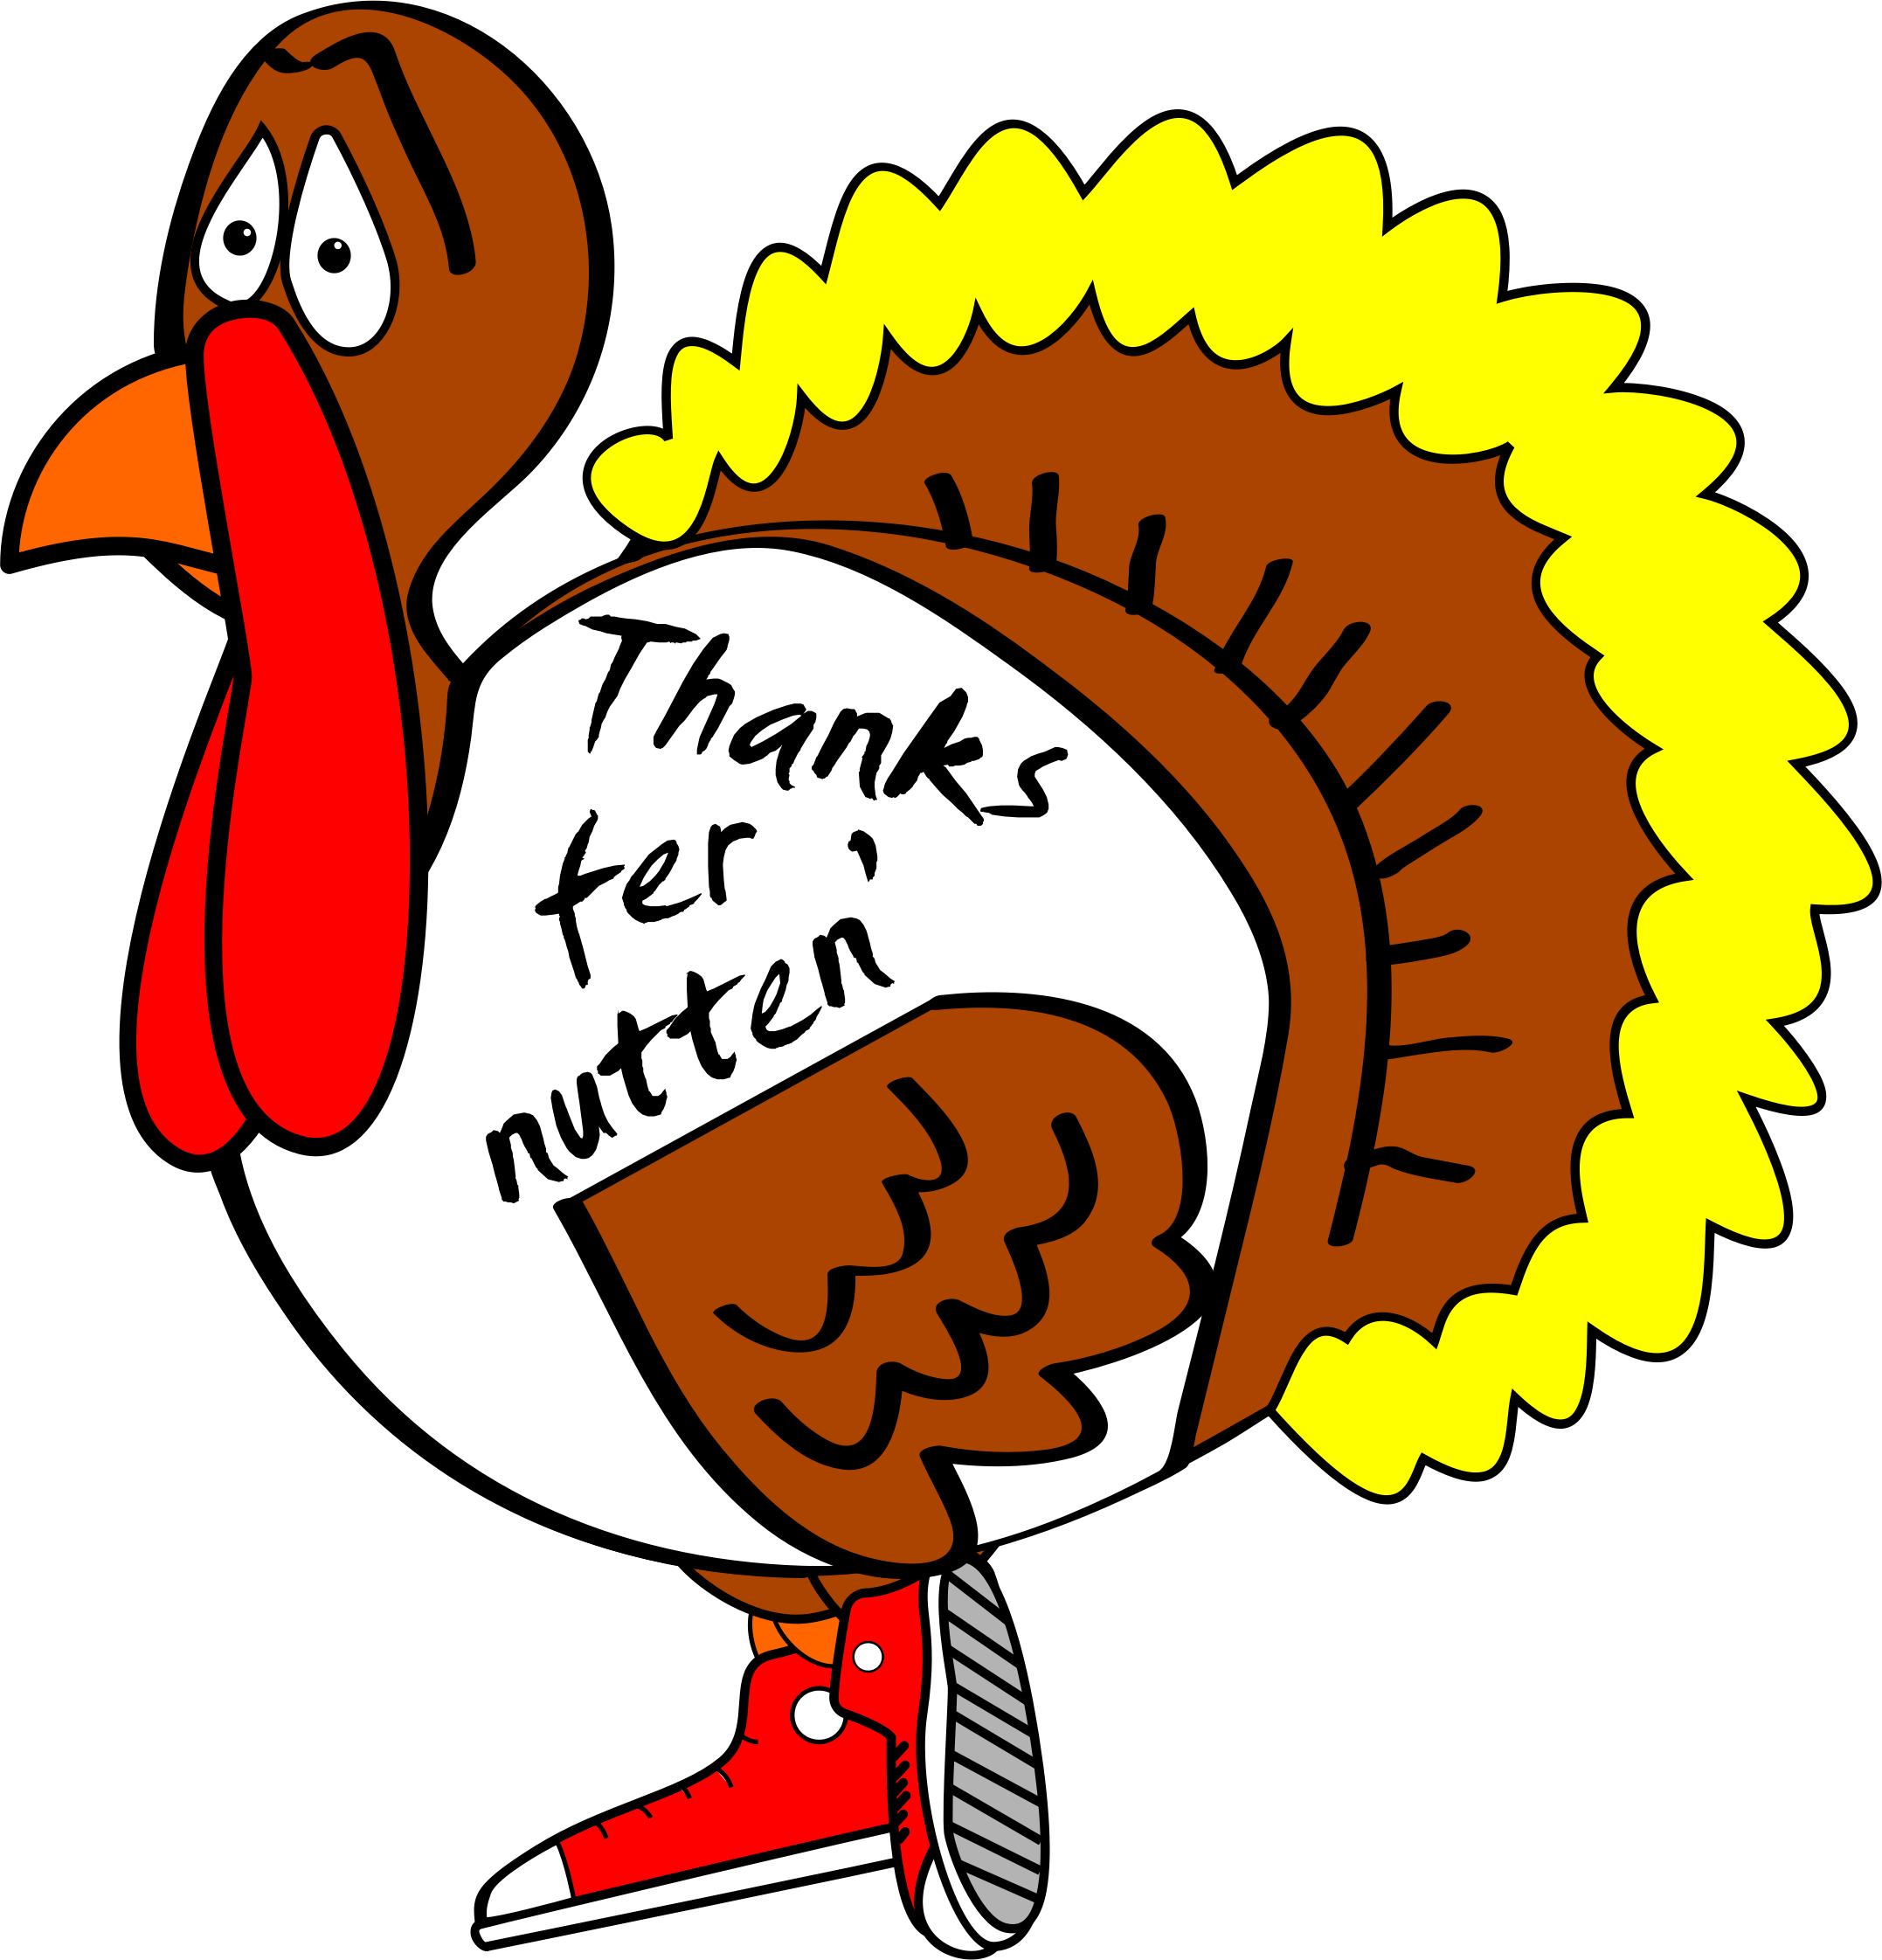 Free funny turkey clipart picture freeuse download Silly Turkey Clipart at GetDrawings.com | Free for personal use ... picture freeuse download